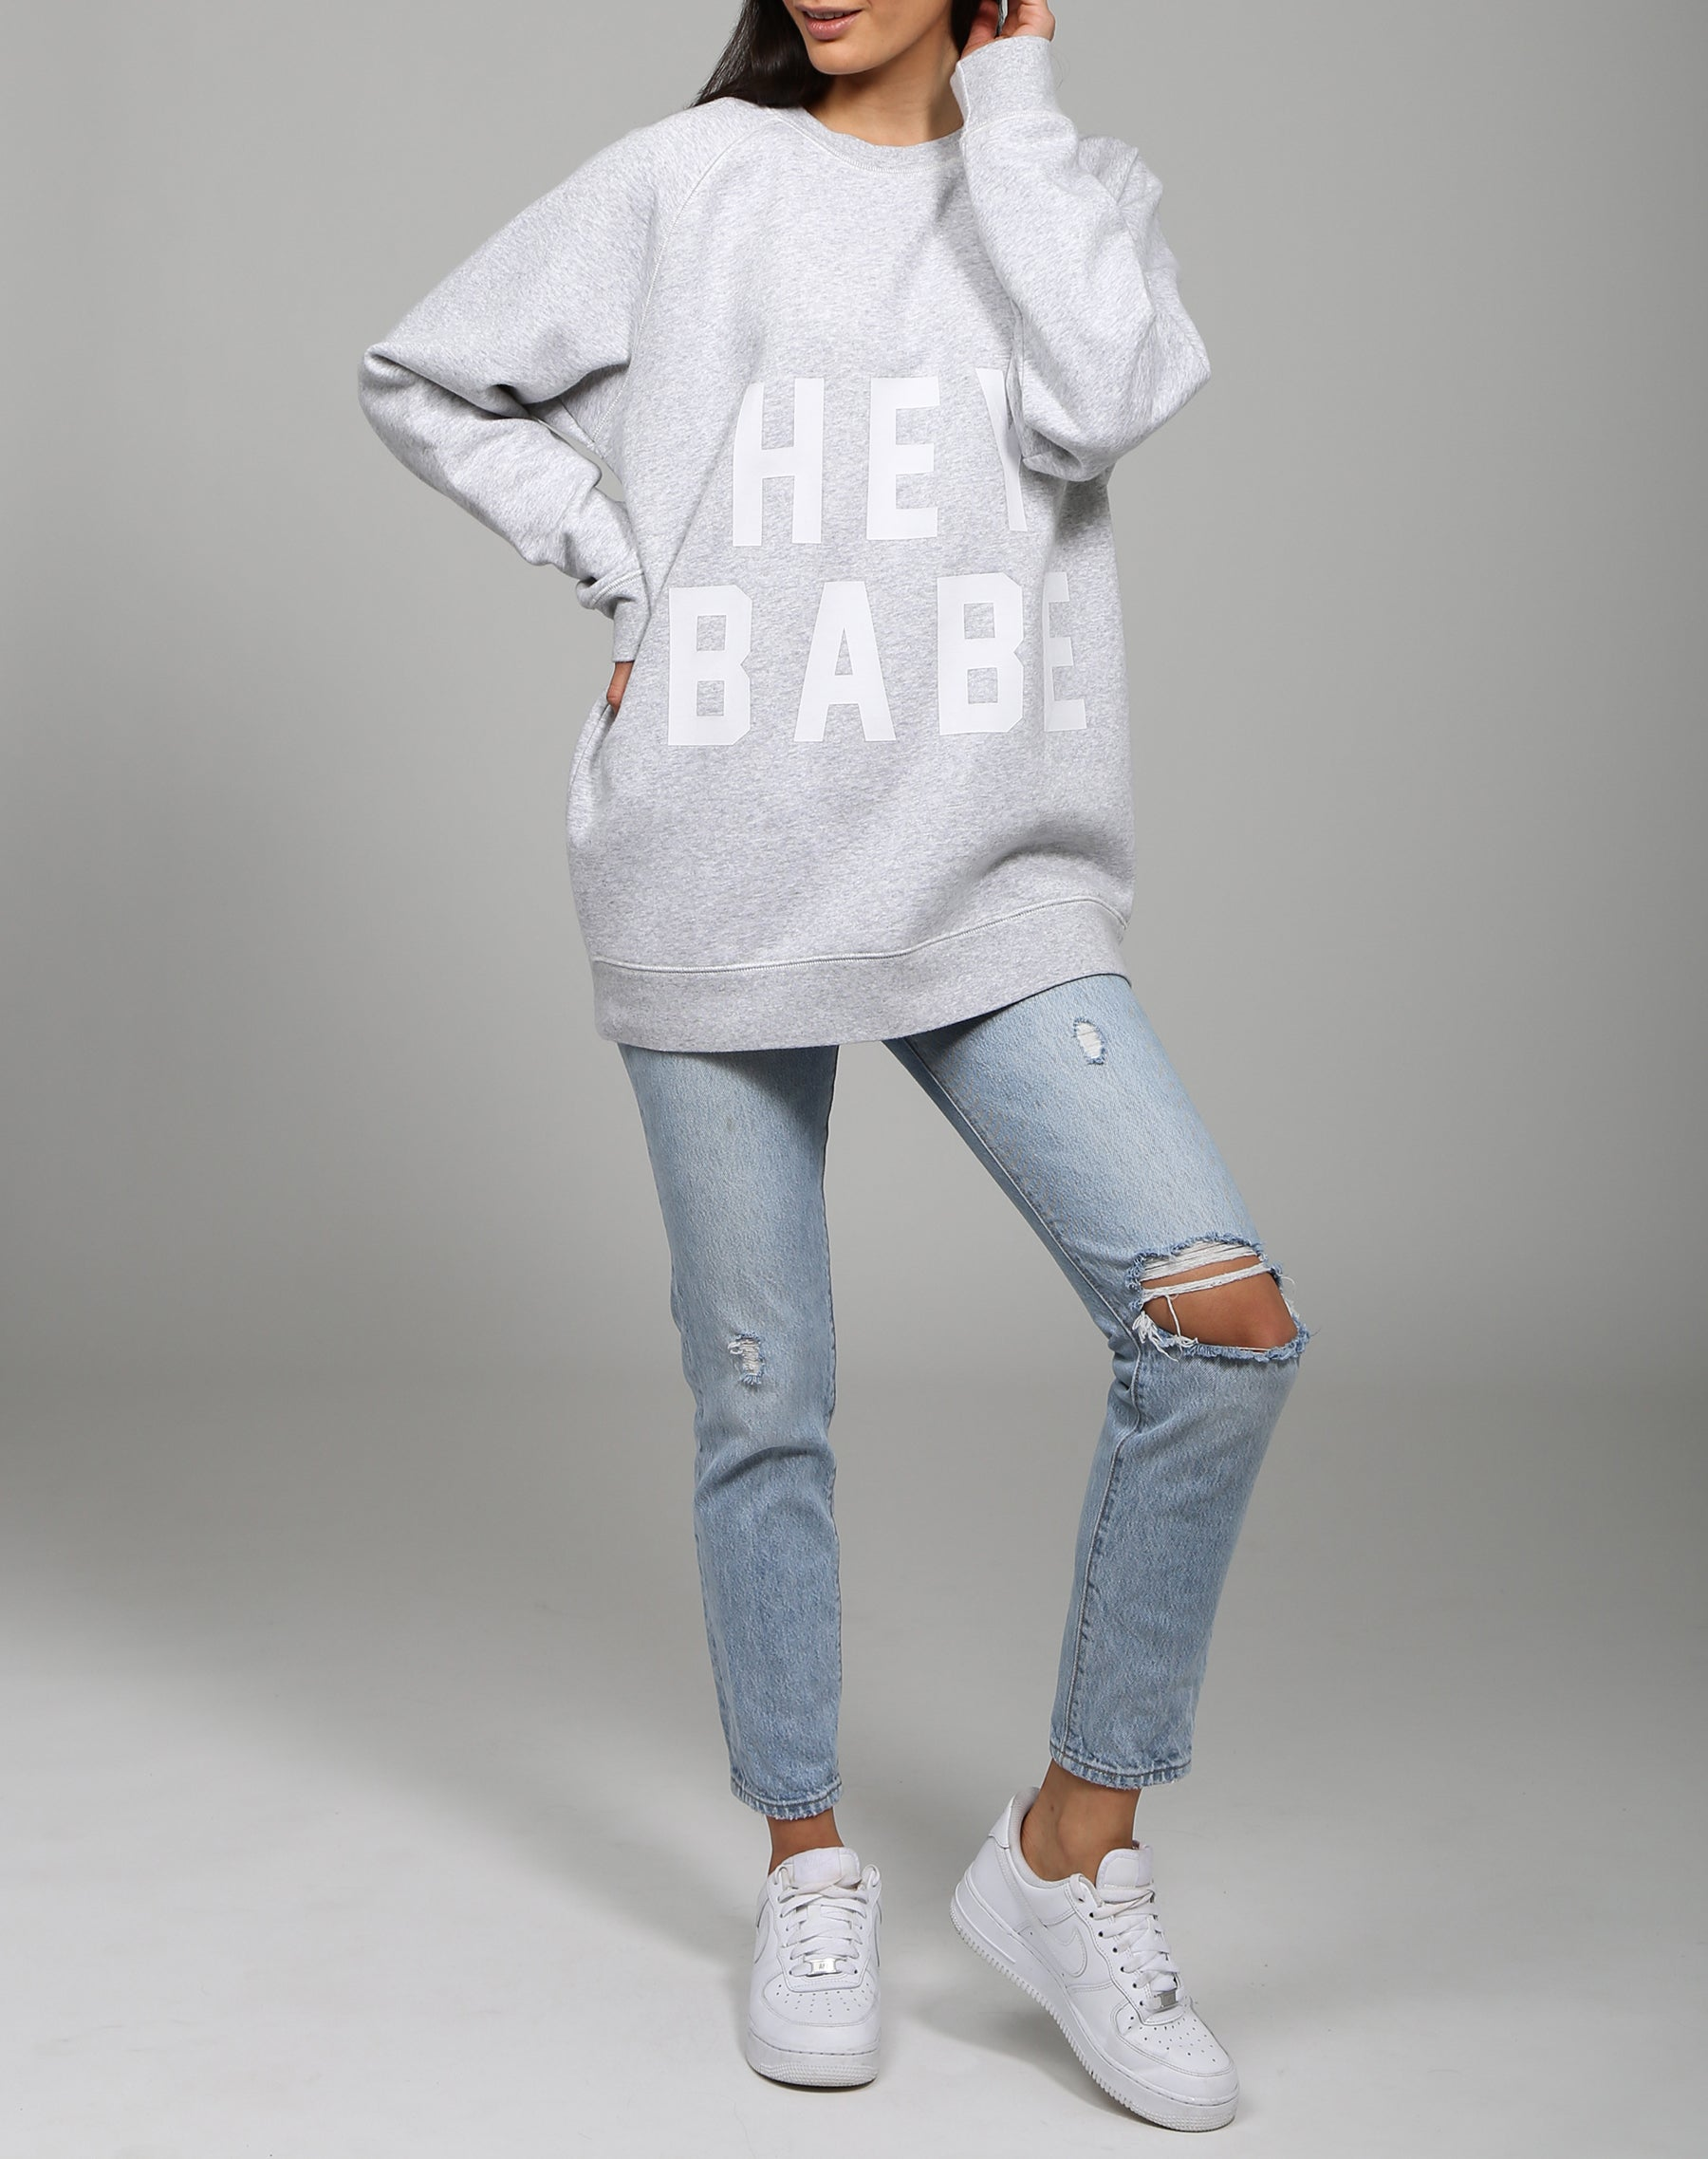 Photo of the Hey Babe big sister crew neck sweatshirt in pebble grey by Brunette the Label.